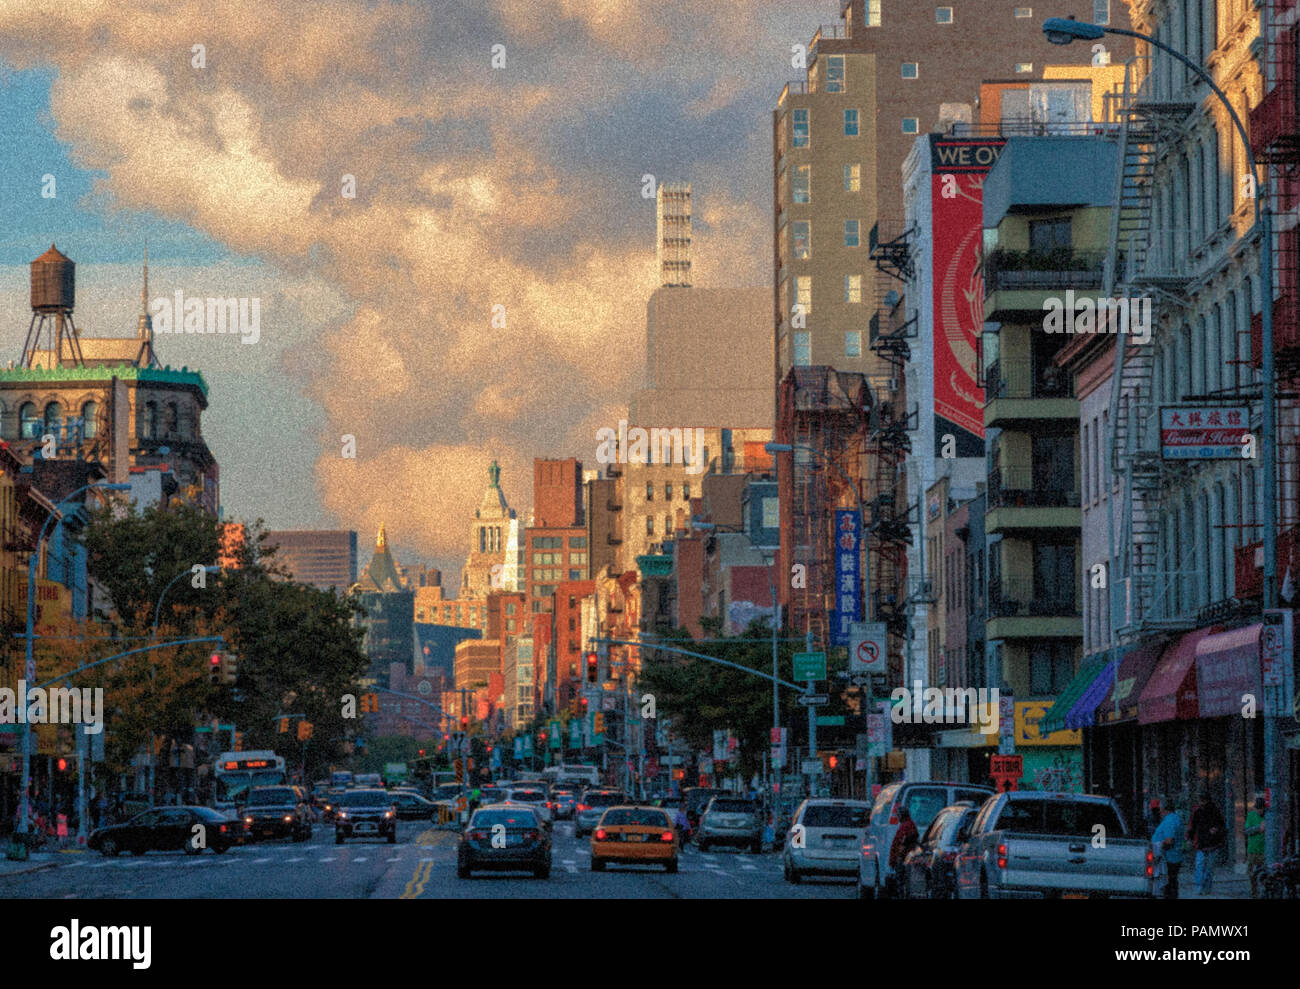 New York, New York State, United States of America.  View down The Bowery. - Stock Image